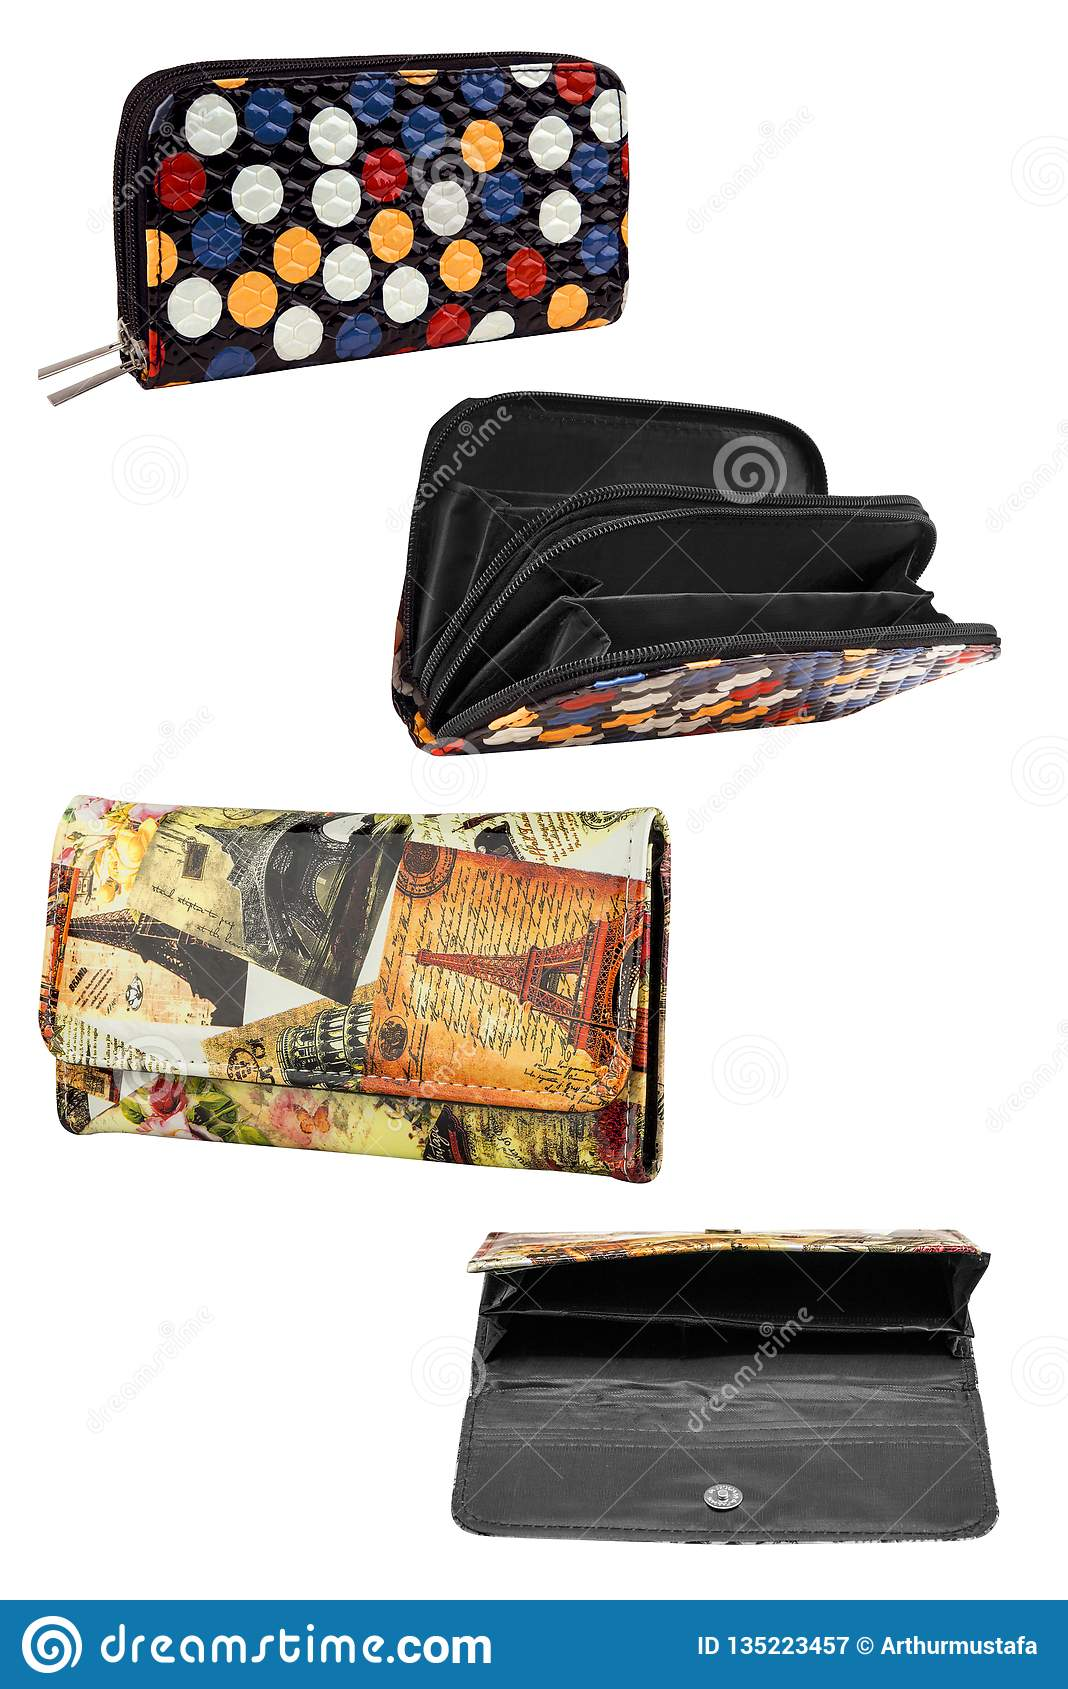 b9e79d98 Women wallets. Color stylish leather and fabric wallets collection, isolated  on white background, clipping paths included.